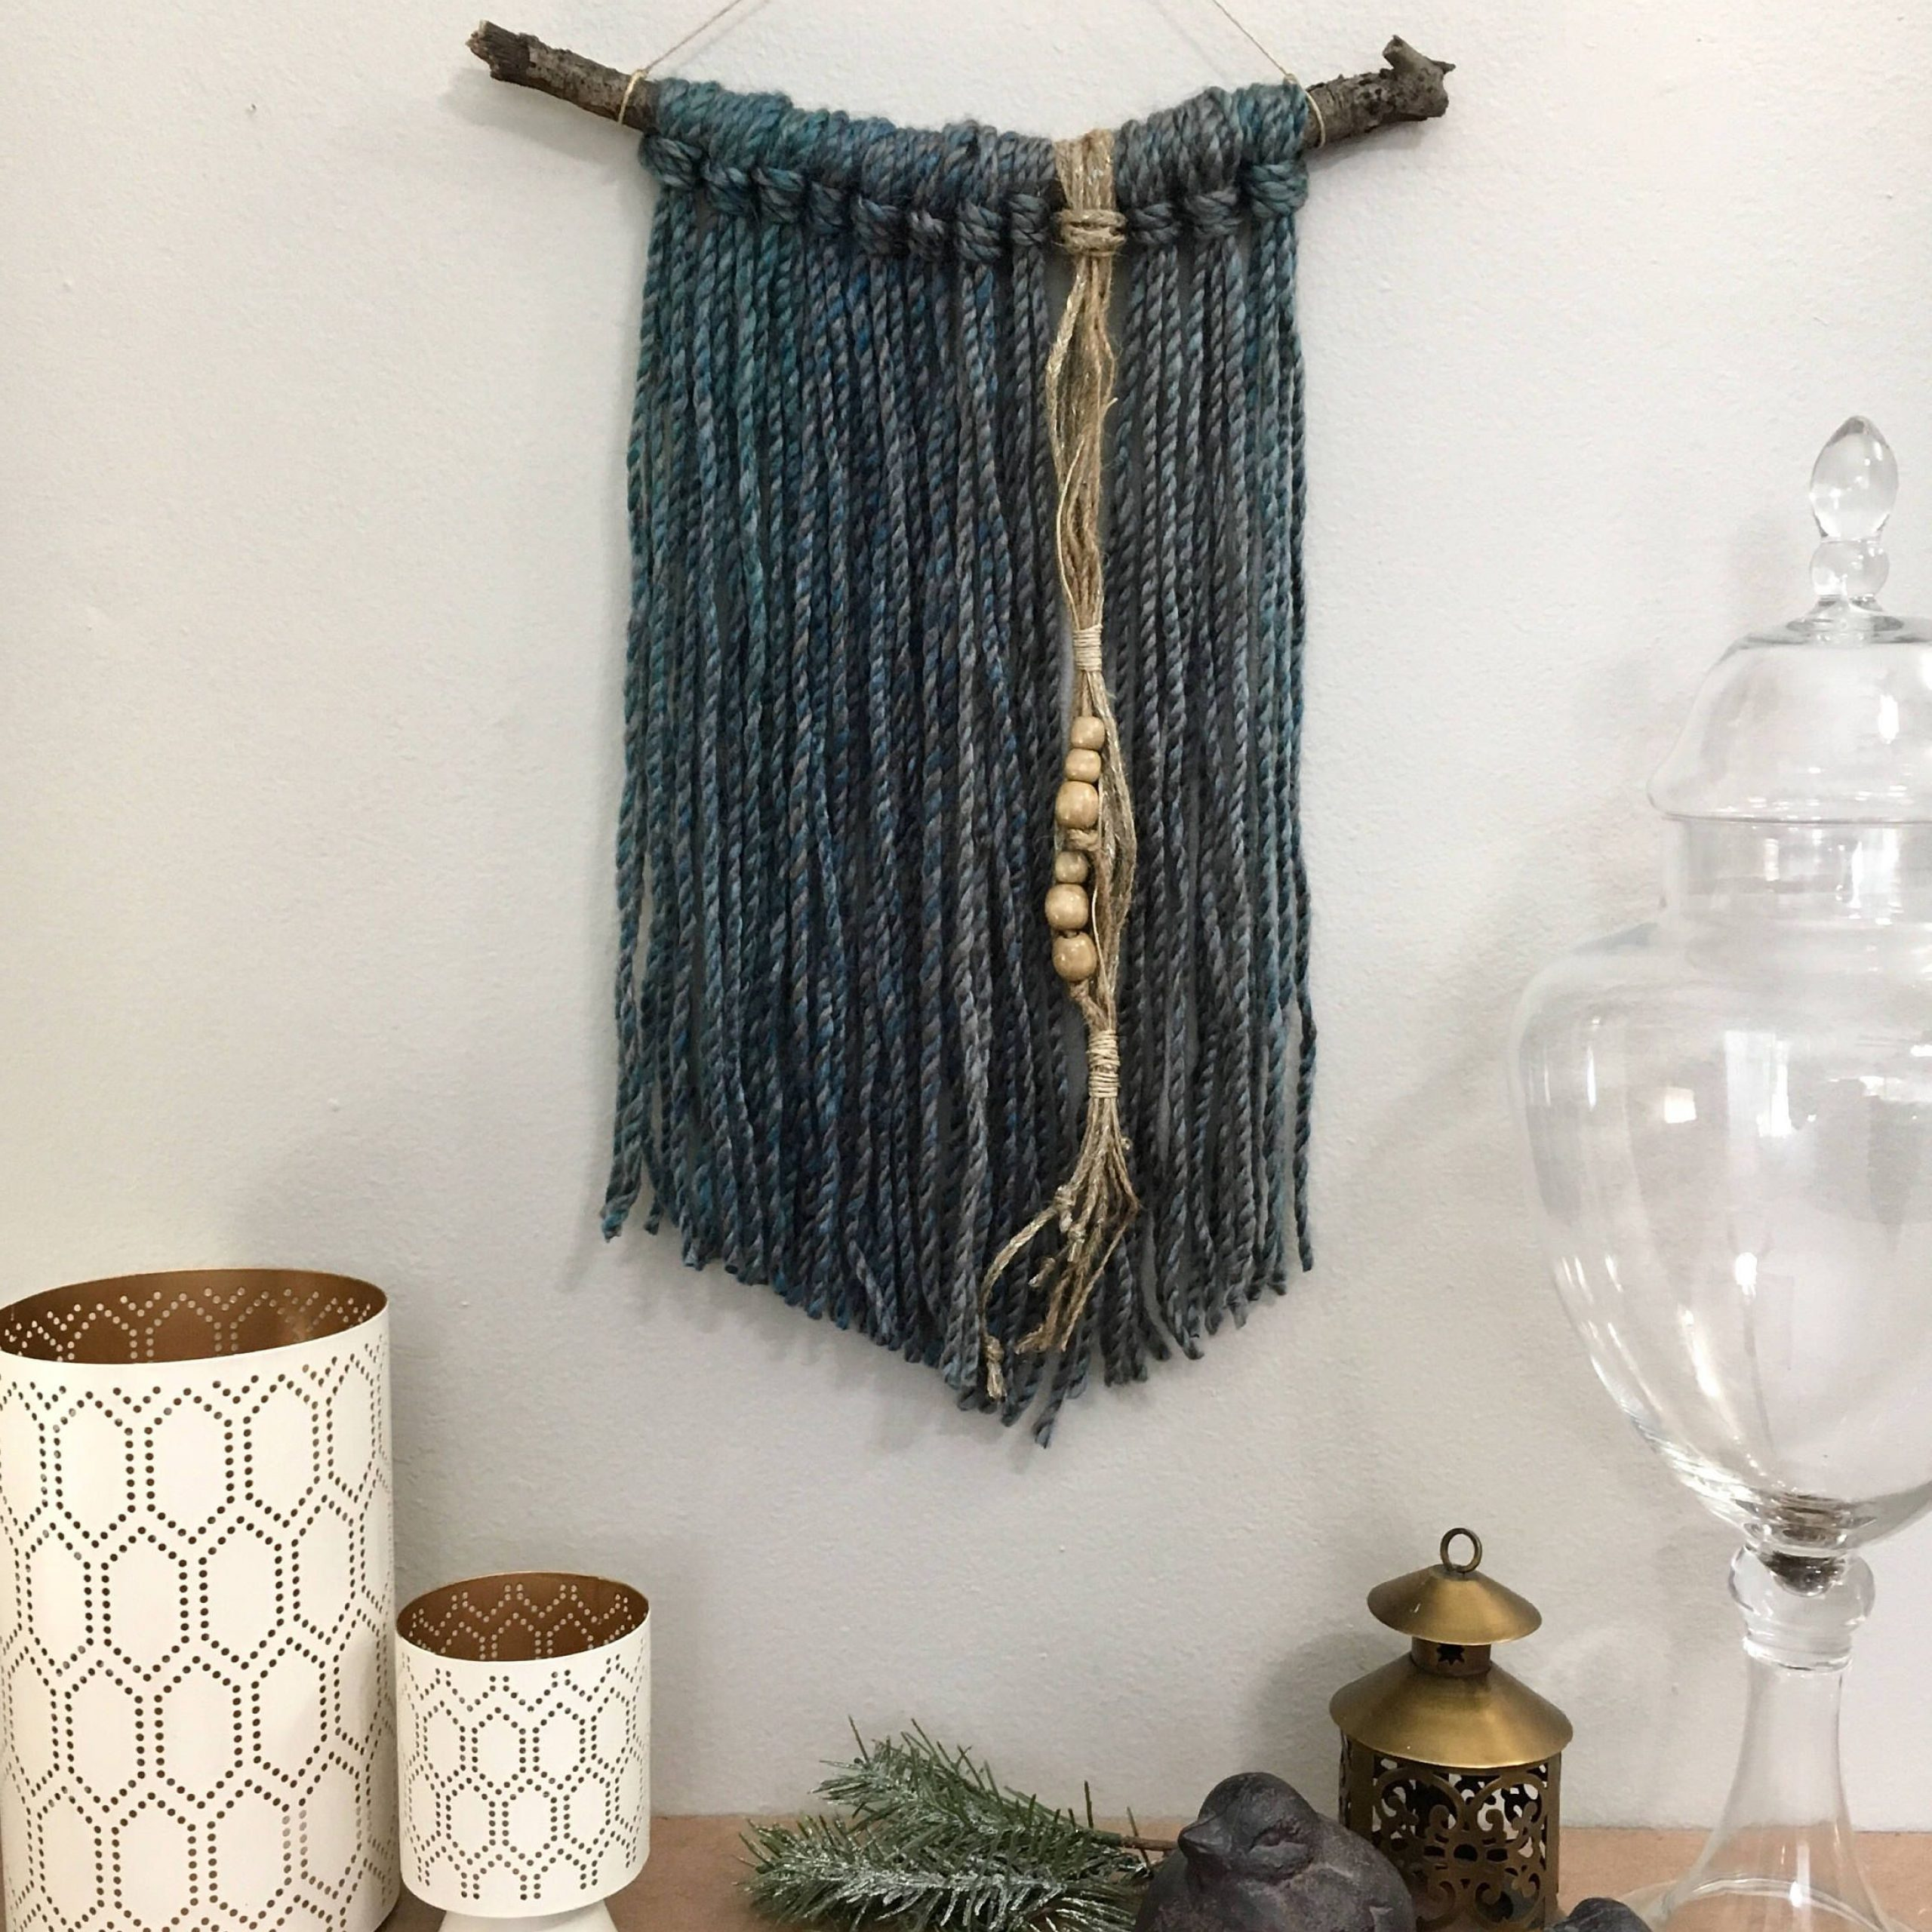 Bohemian Wall Hanging Modern Yarn Wall Hanging Macrame Boho Intended For 2019 Blended Fabric Wall Hangings With Hanging Accessories Included (View 17 of 20)